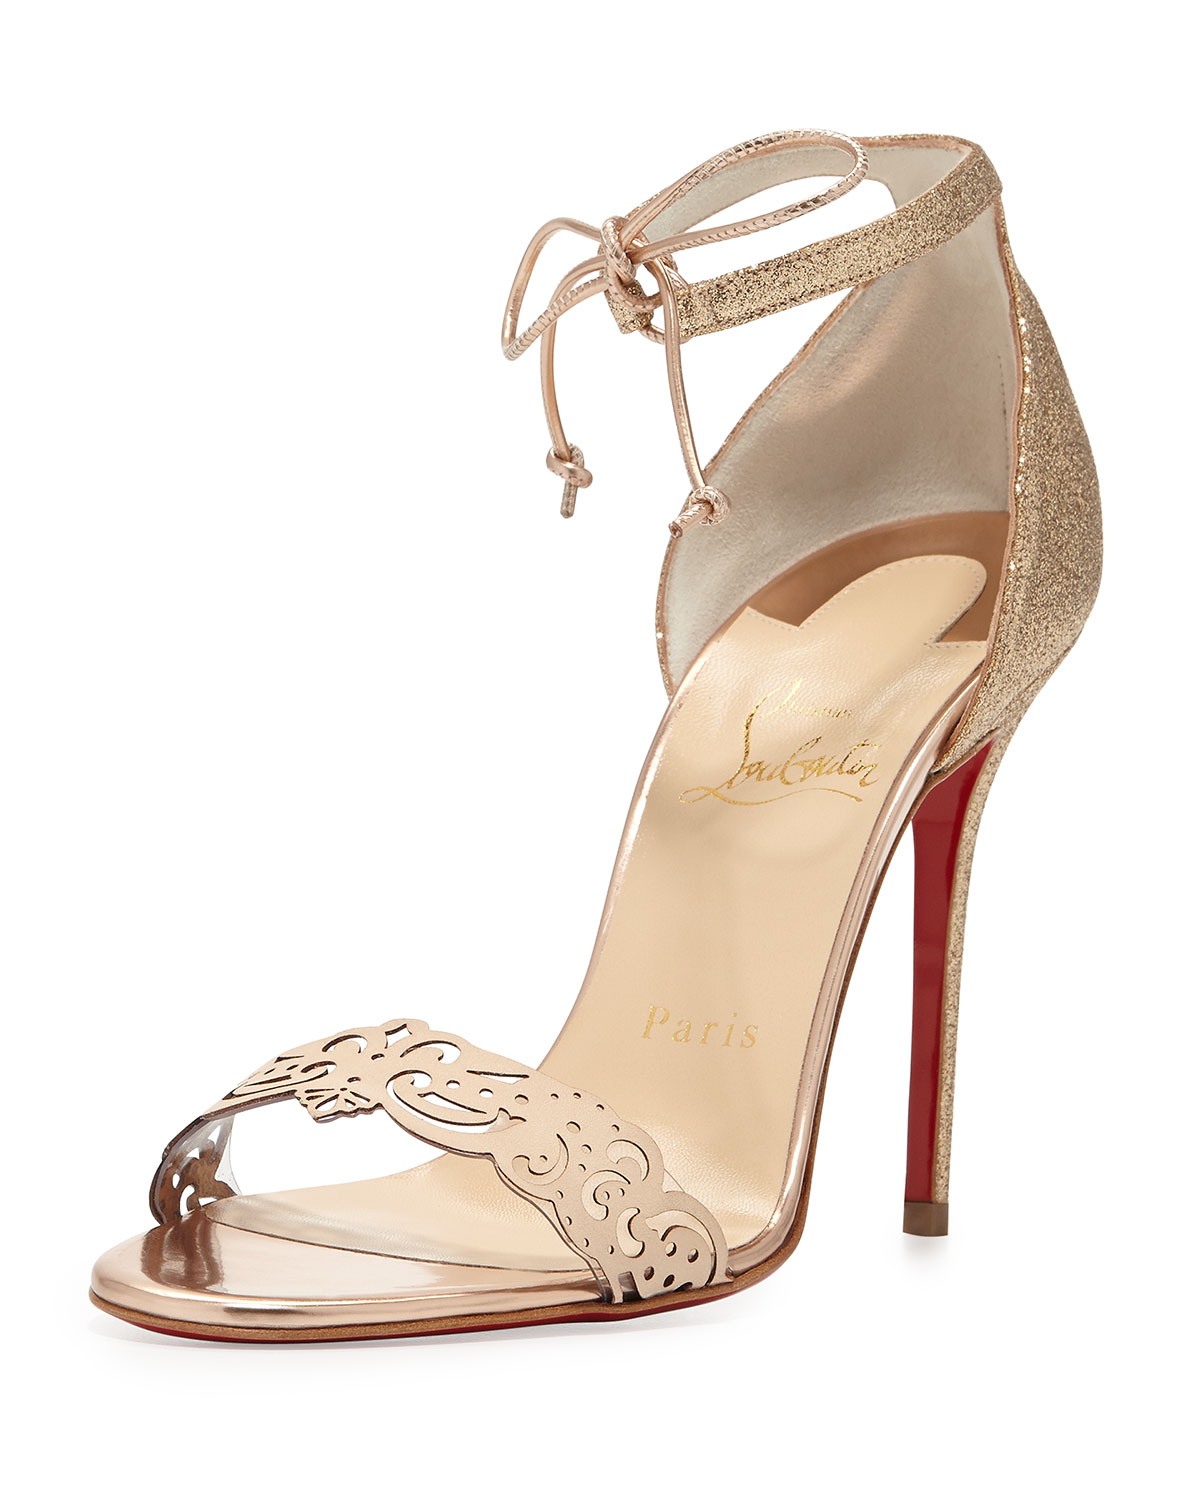 replica christian louboutin shoes - christian louboutin metallic sandals Pewter leather covered ...